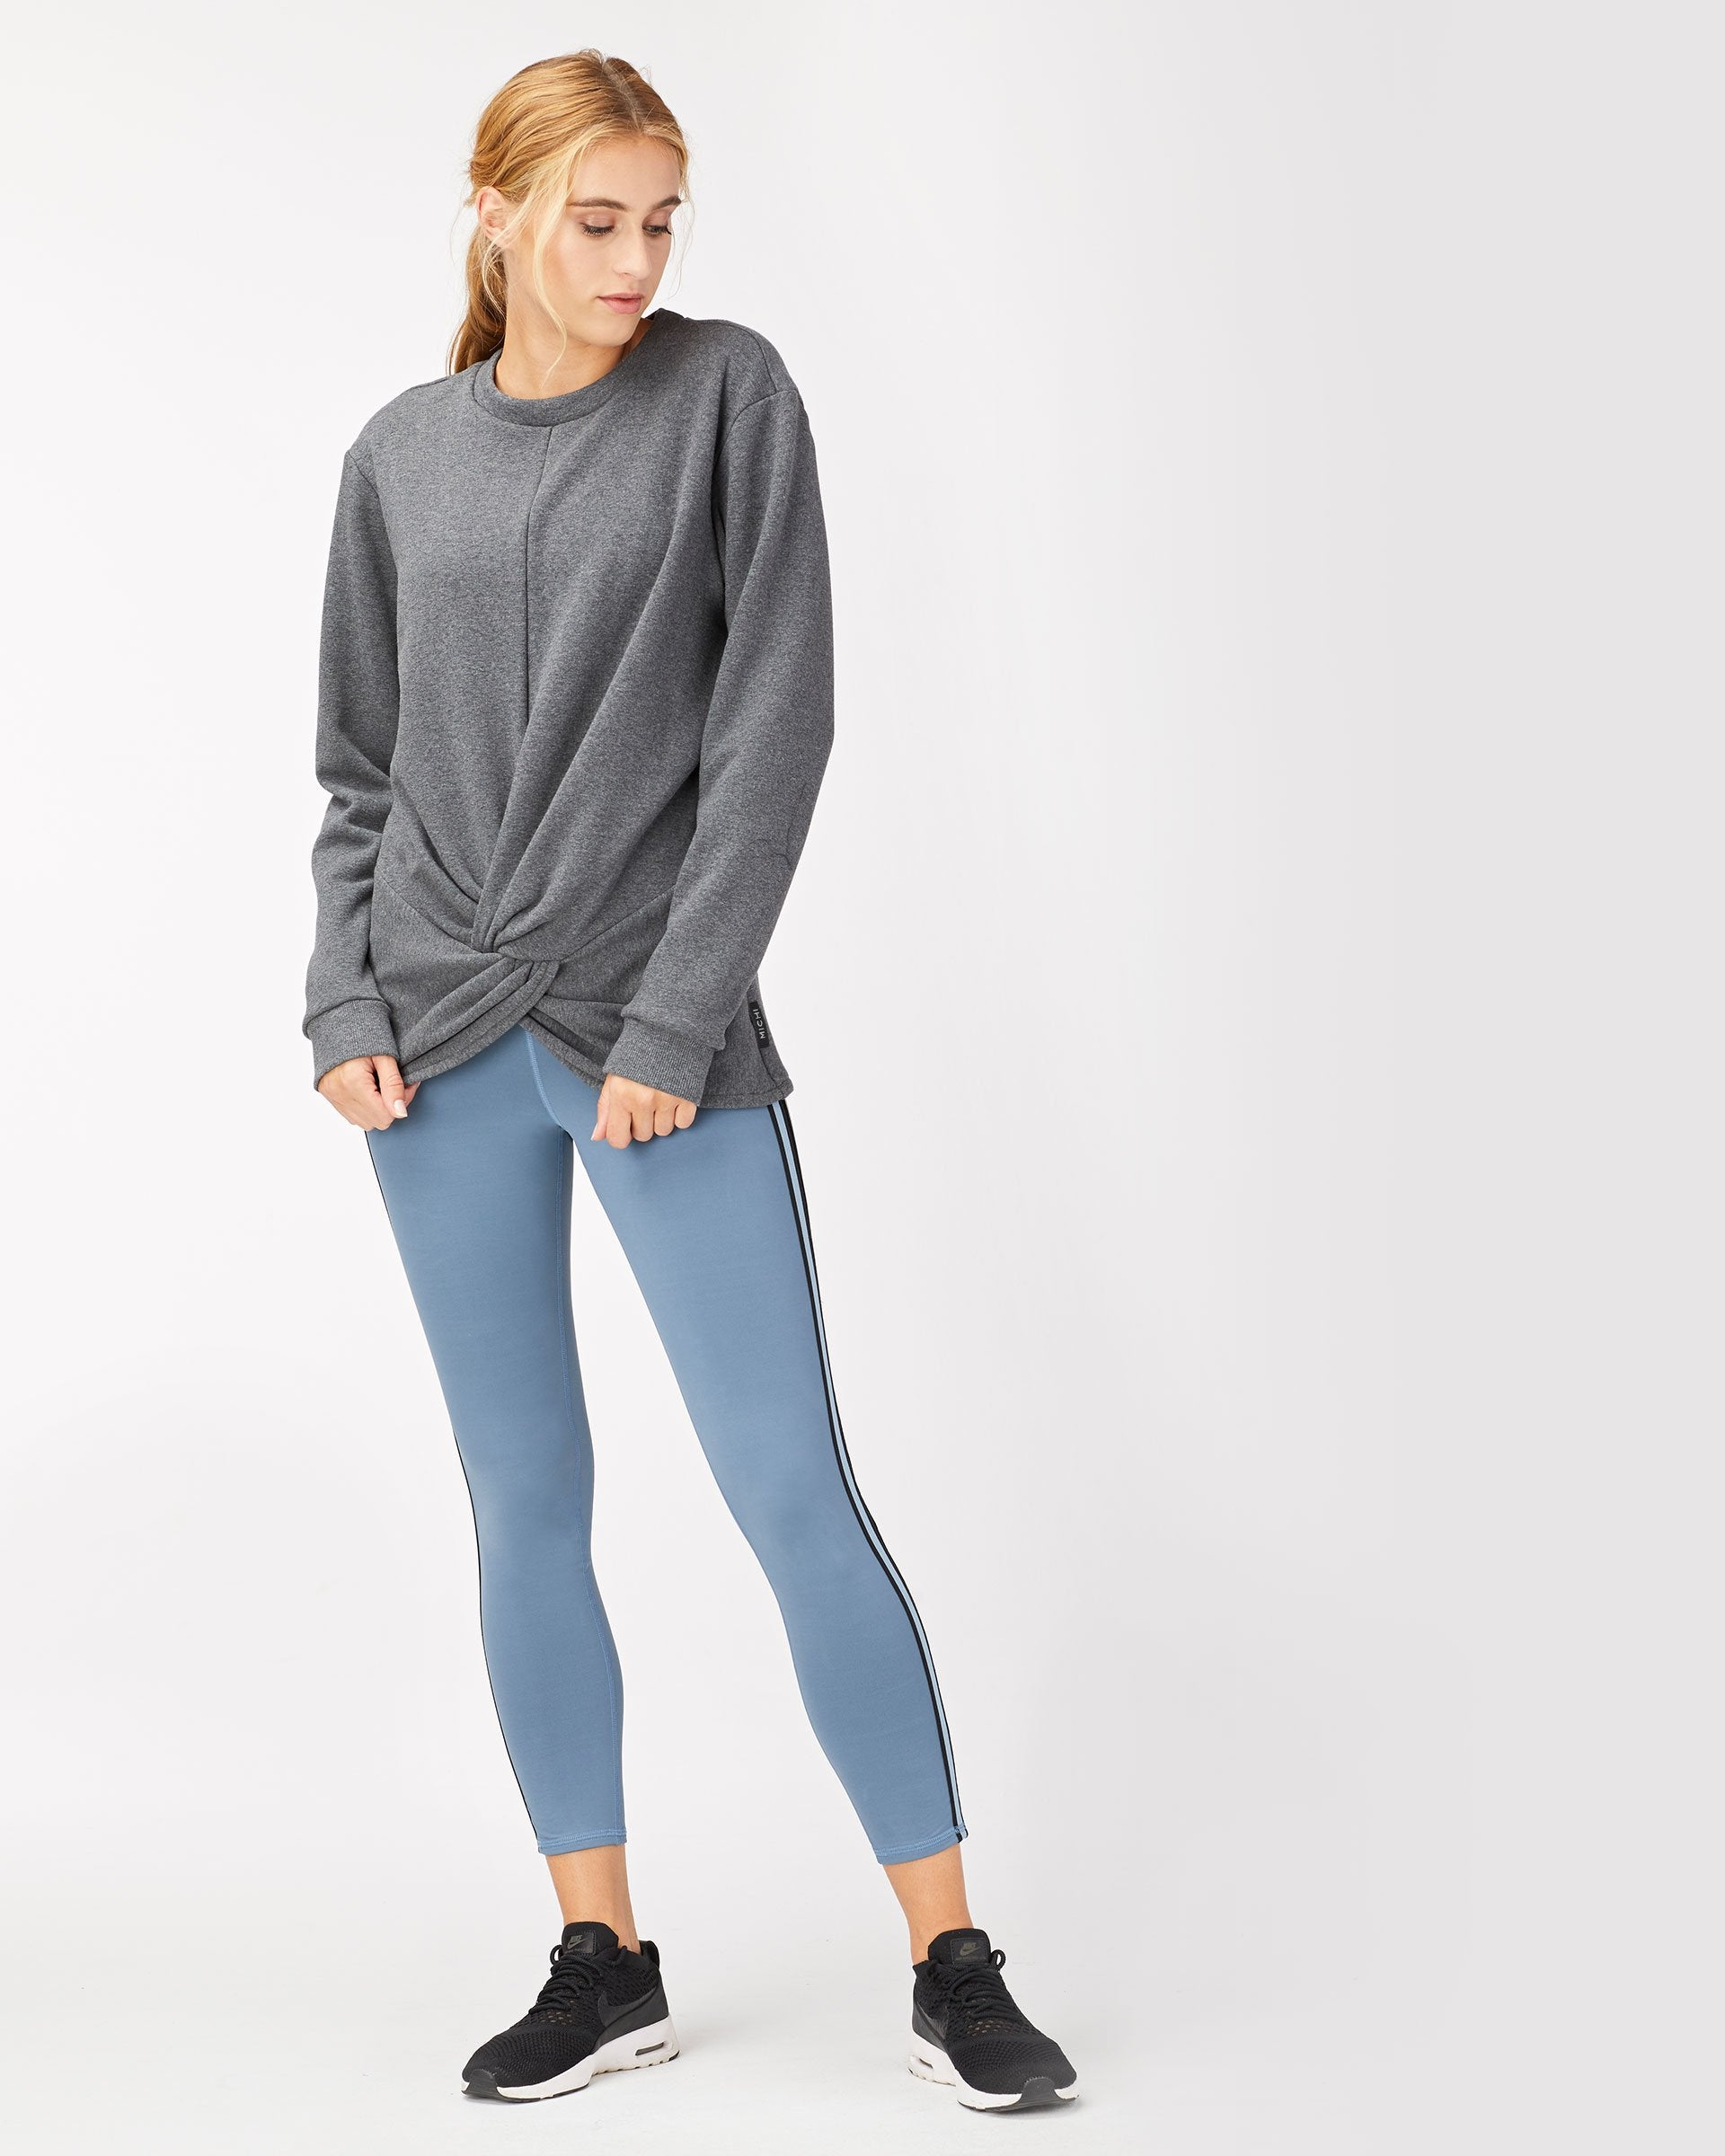 Farfalla Sweatshirt - Charcoal Grey